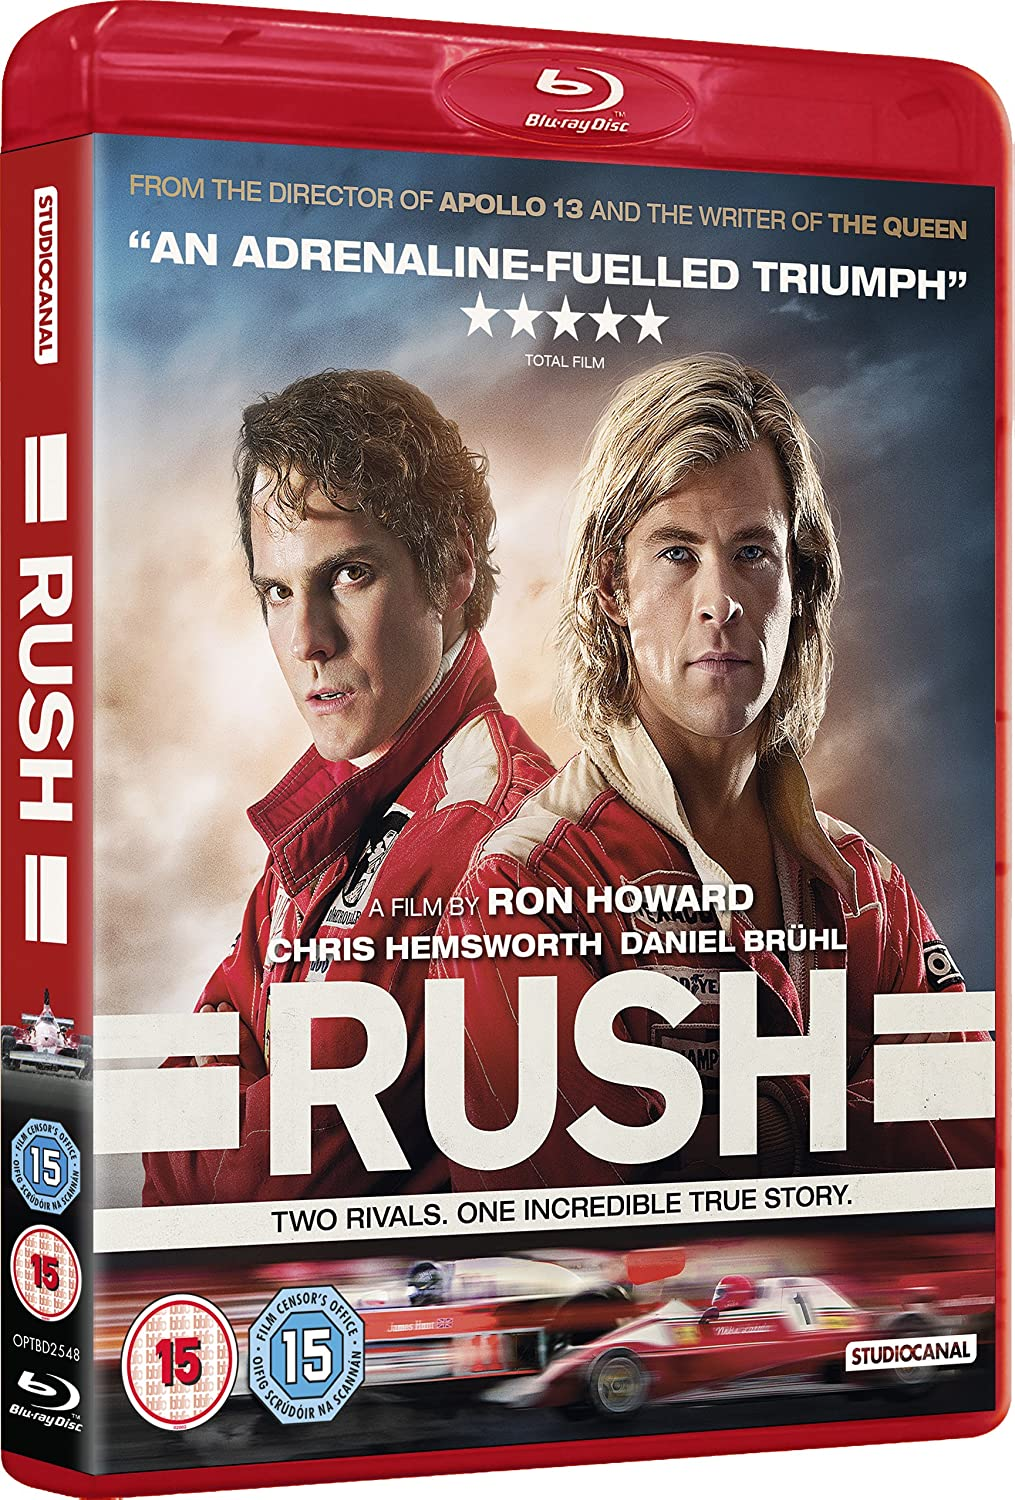 Rush Release Picks Up Speed